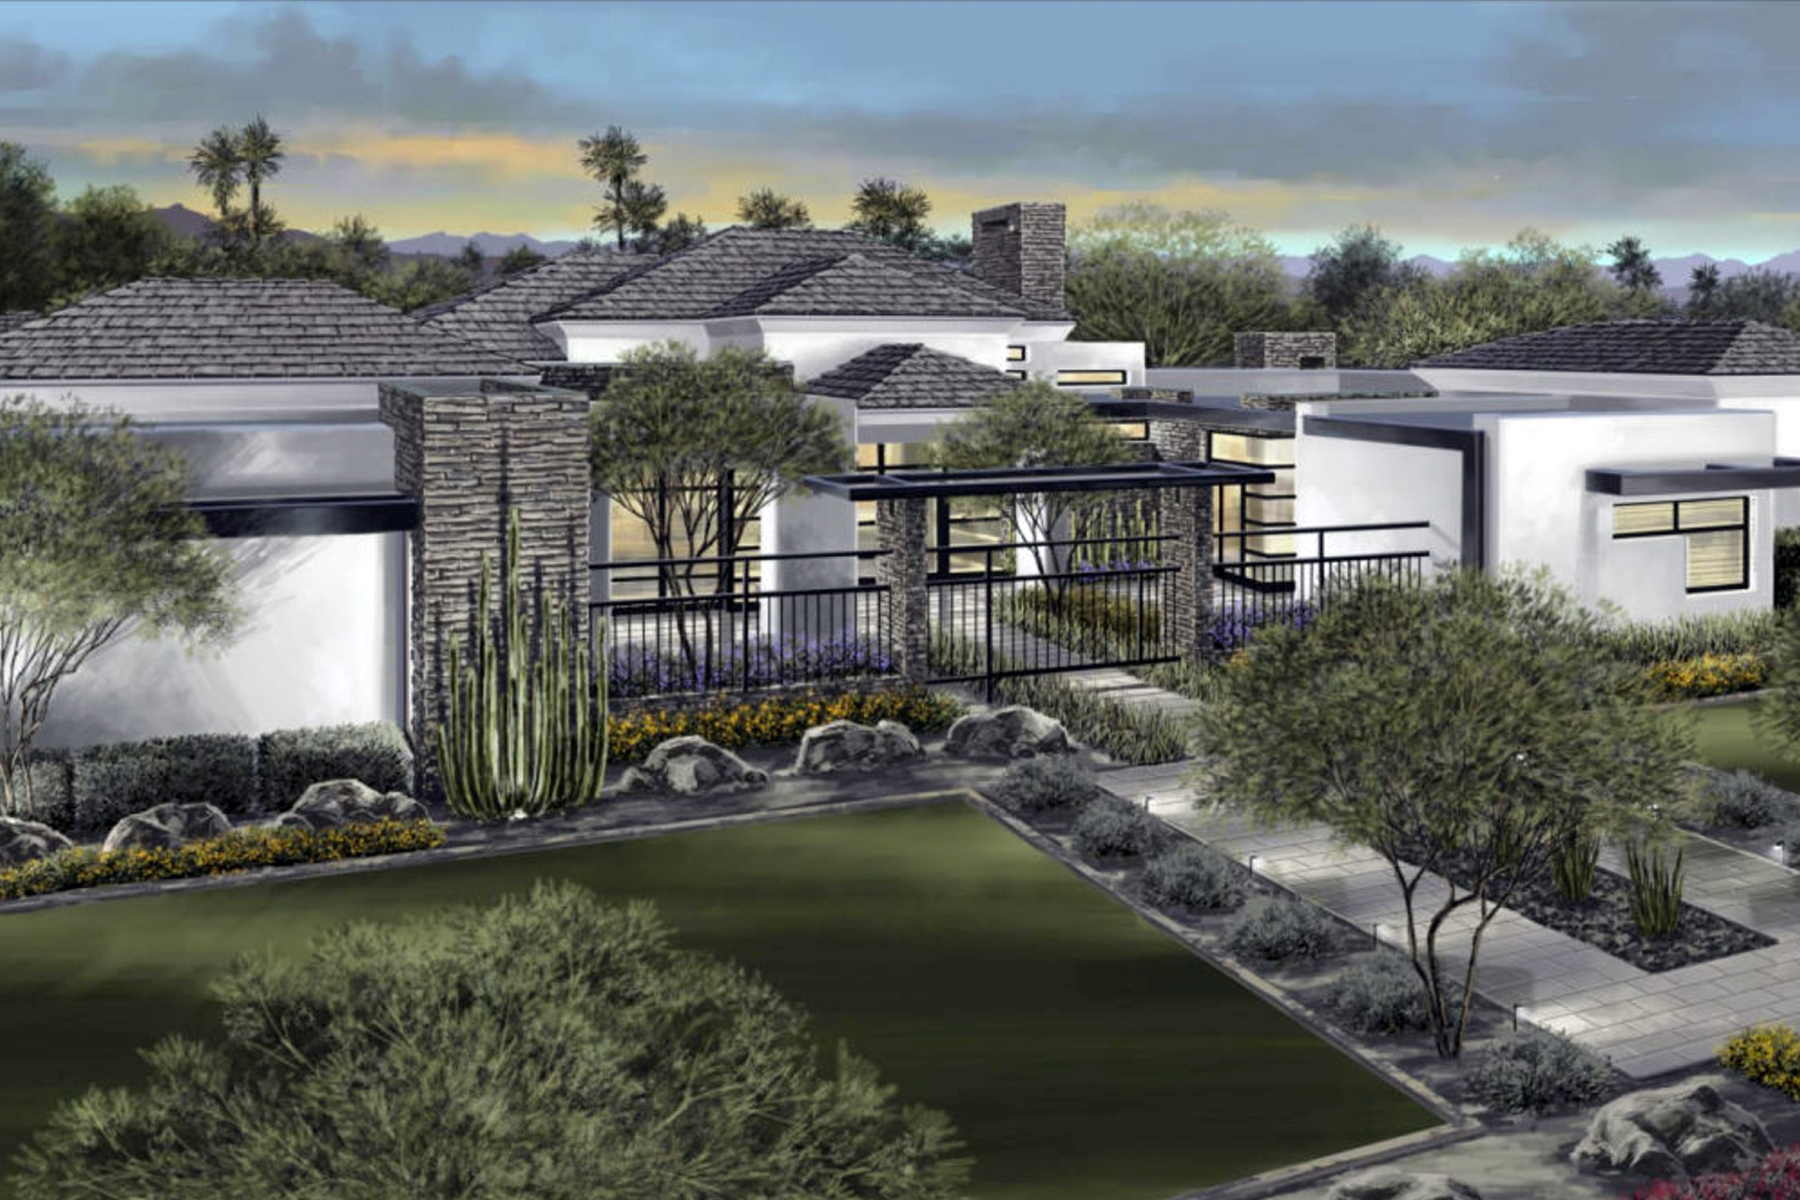 Maison unifamiliale pour l Vente à Modern Luxury Home In The Highly Coveted Neighborhood Of Paradise Valley Farms 7470 E Northern Ave Scottsdale, Arizona 85258 États-Unis